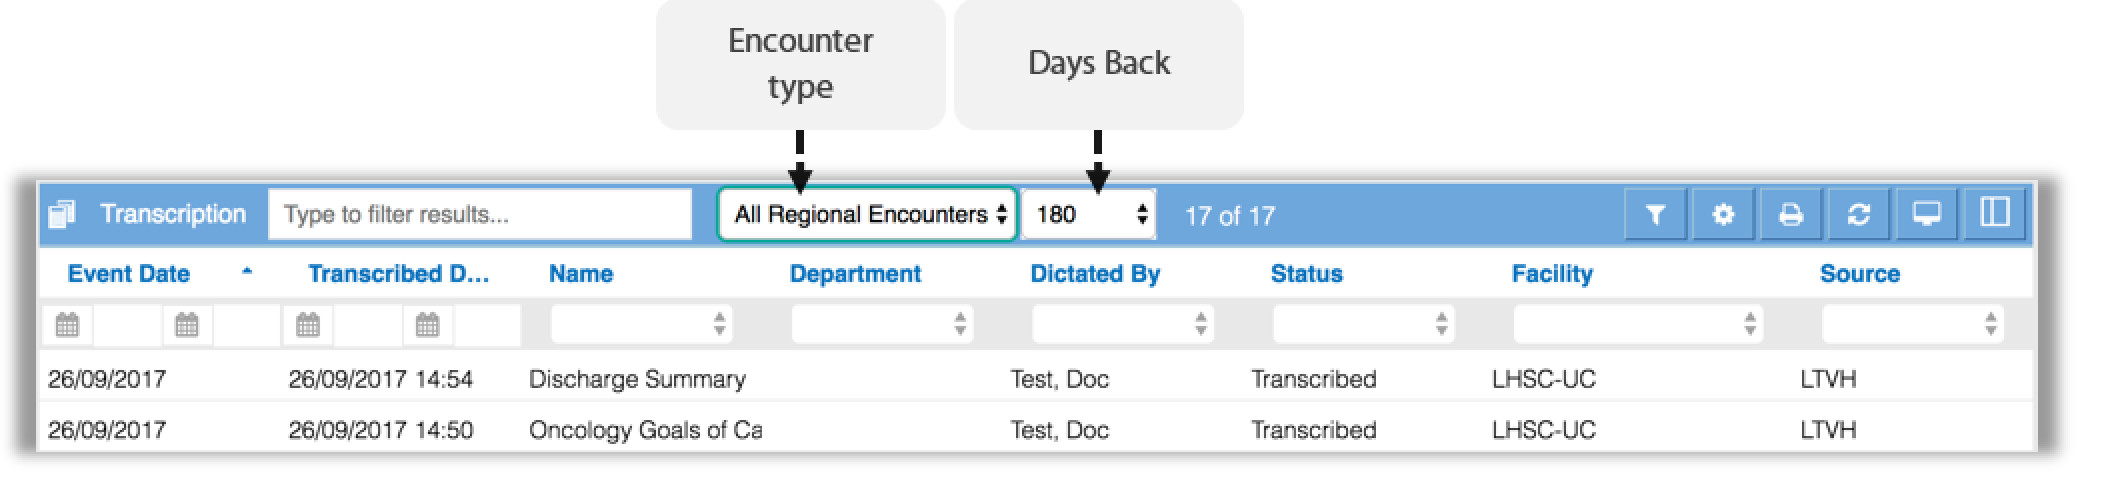 image showing the encounter type and days back filter